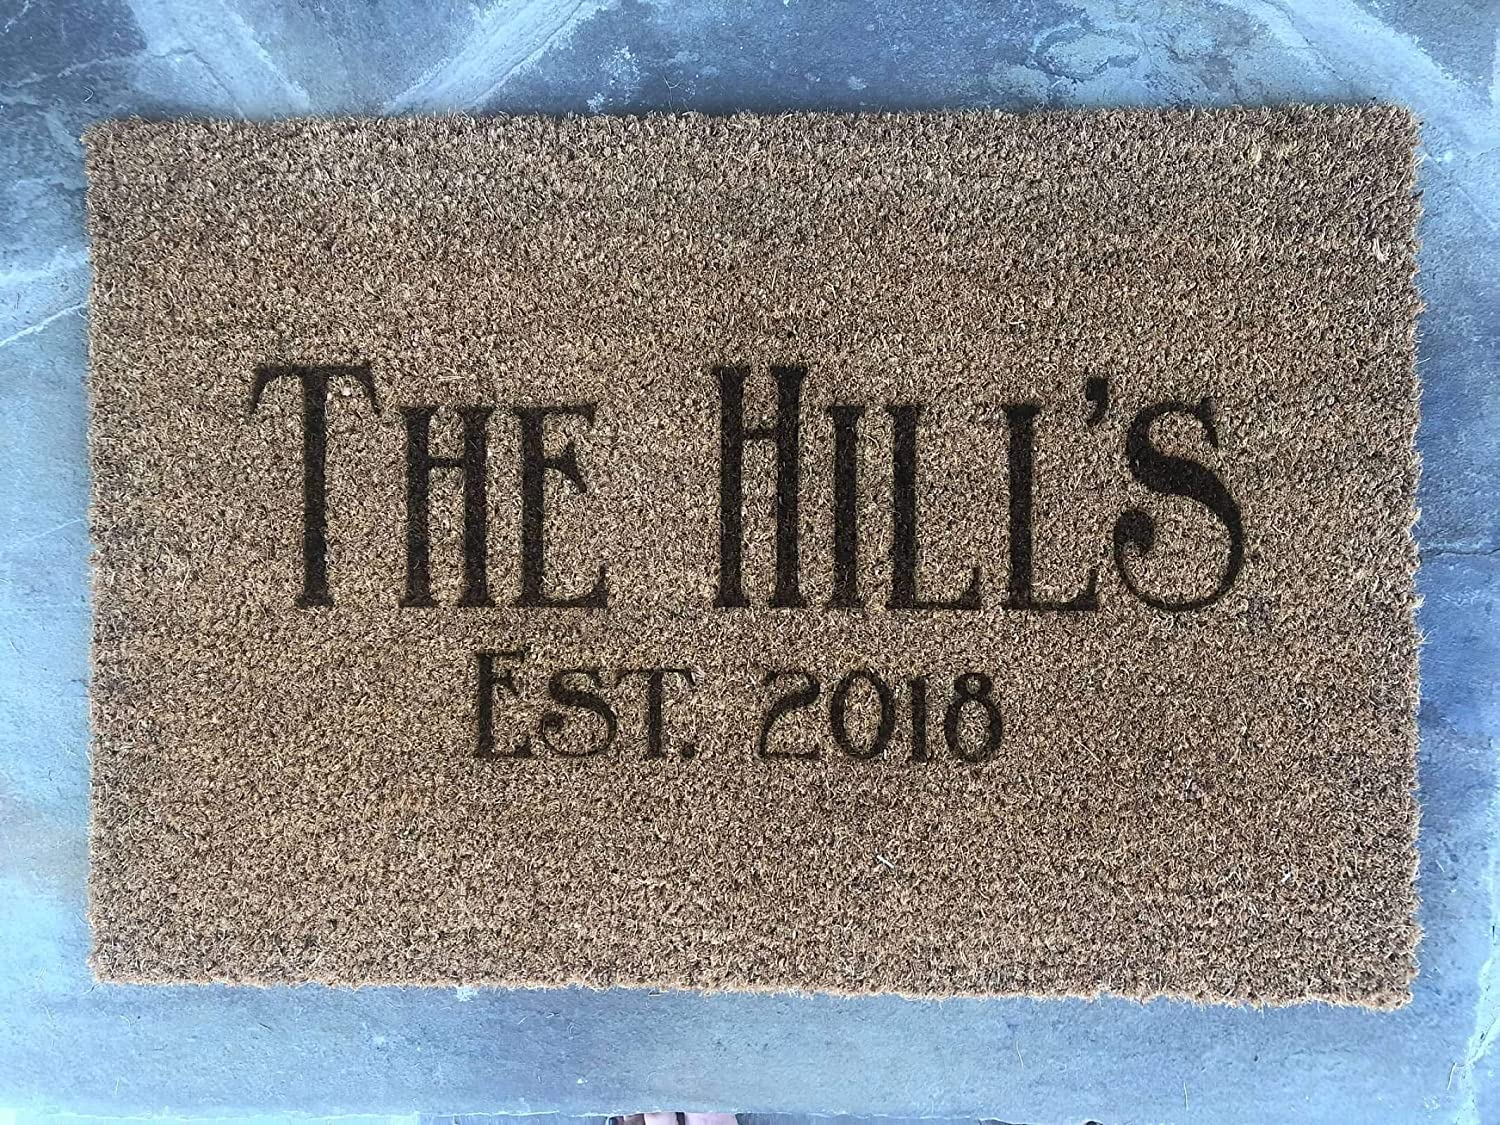 Personalized Family Name Date Door Mat Doormat Front Entry Way Laser Burnt Natural Trampa Ikea Brand Wedding New Home Housewarming Gift FREE Shipping